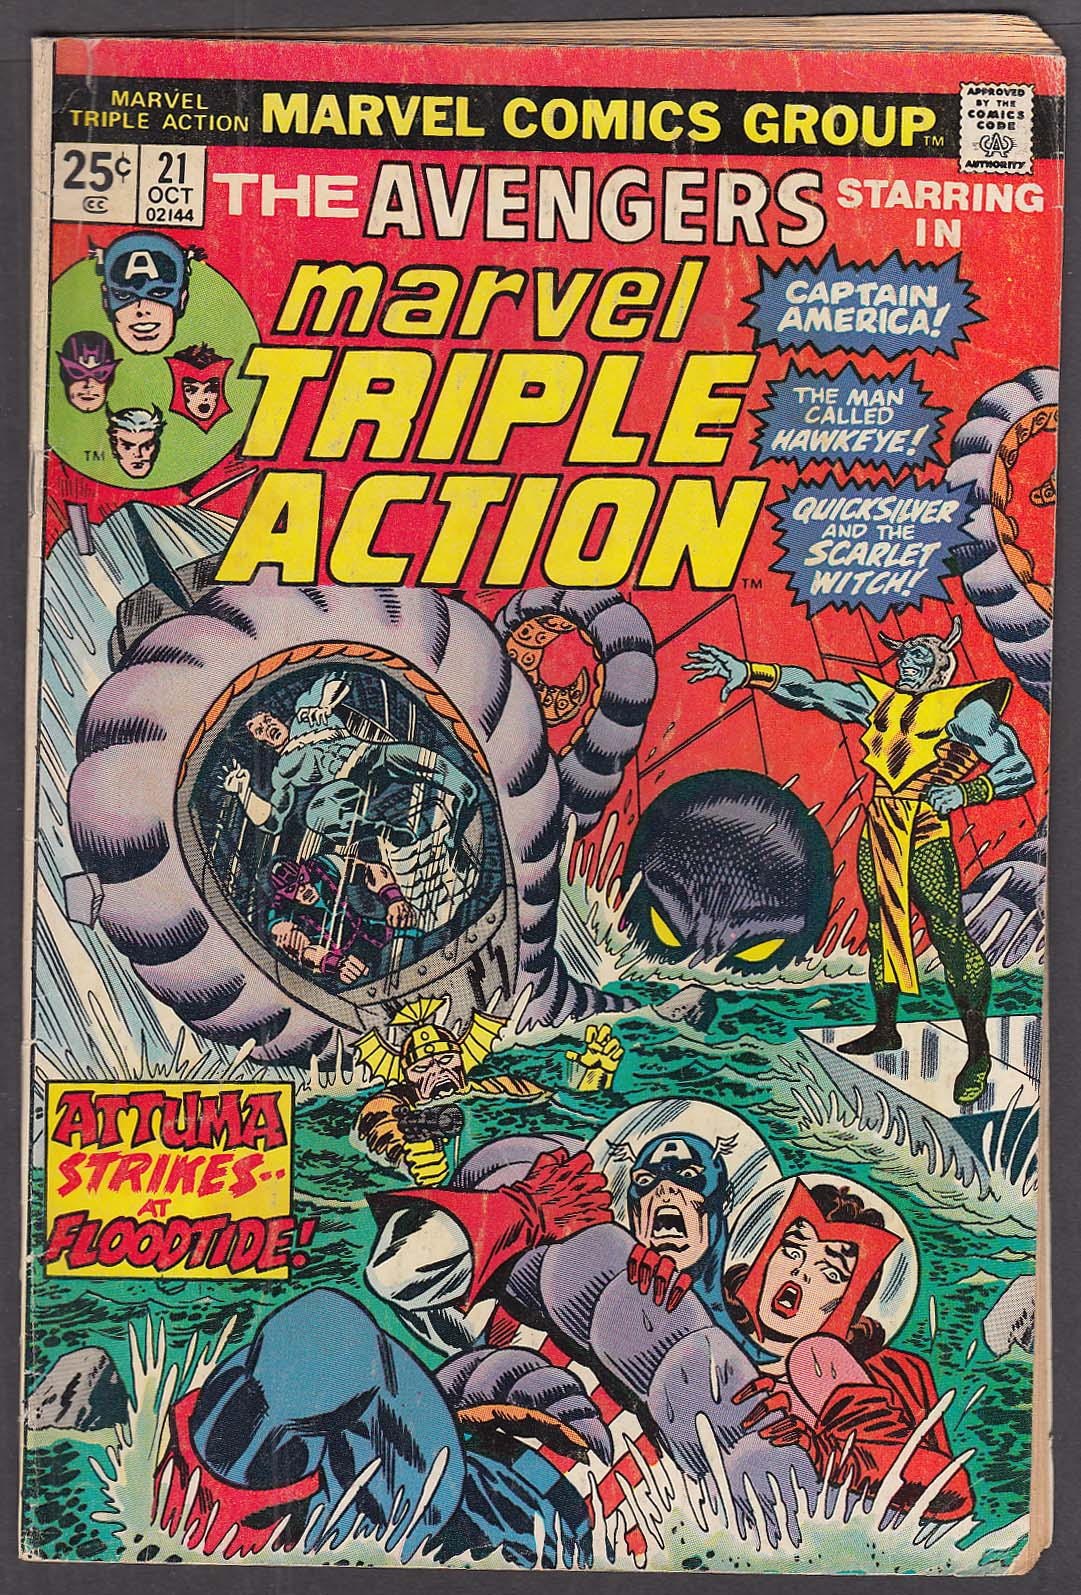 Image for MARVEL TRIPLE ACTION #21 Avengers Captain America Hawkeye comic book 10 1974